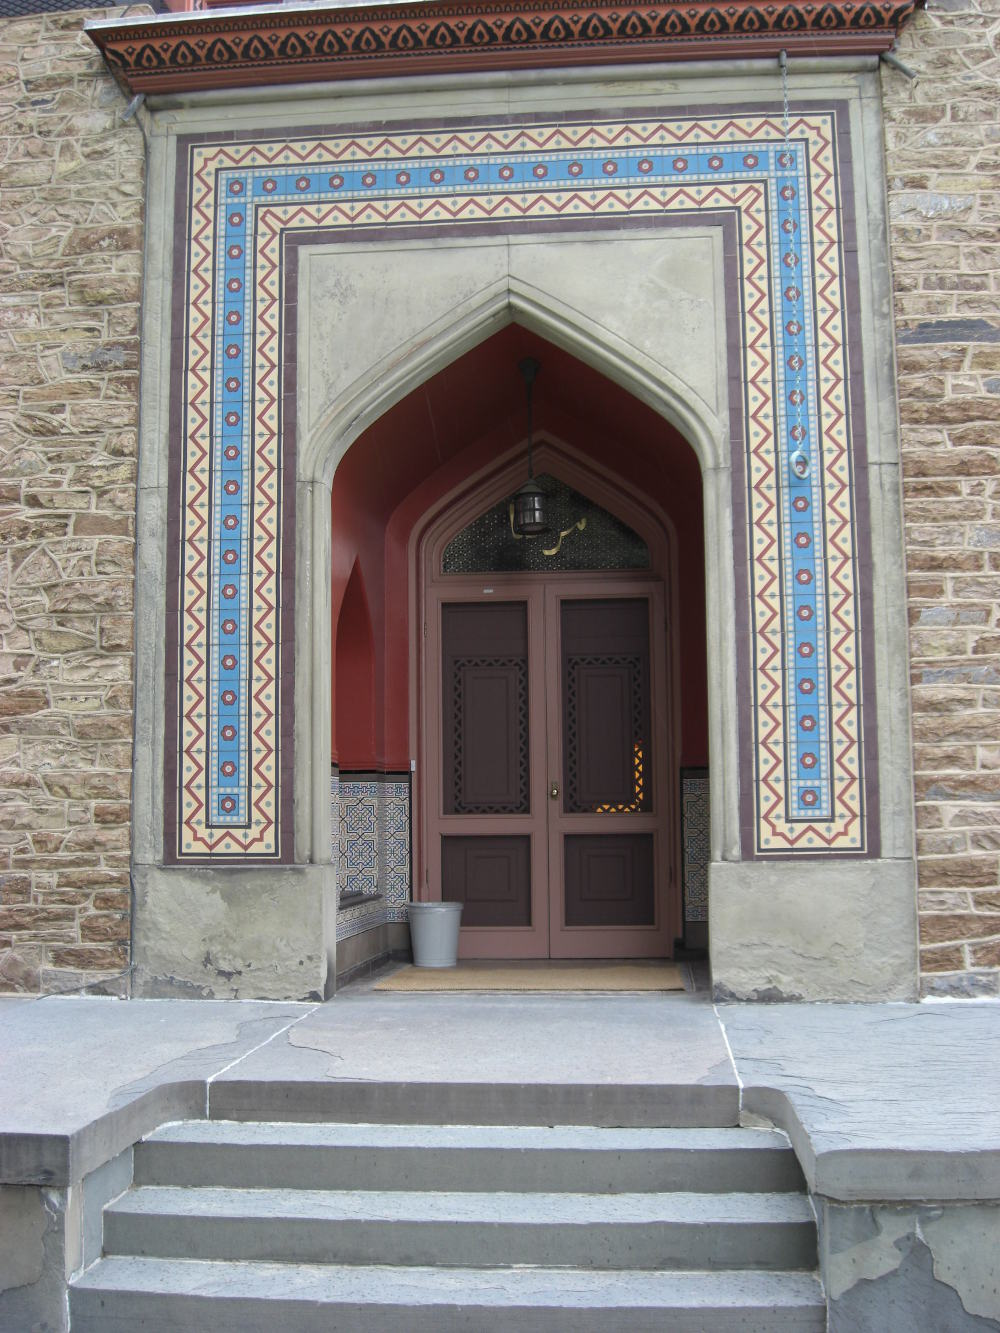 olana - a Moorish arch, inset with tile, frames the mansions front doorway. Stone steps and terrace are blue stone - Atticmag